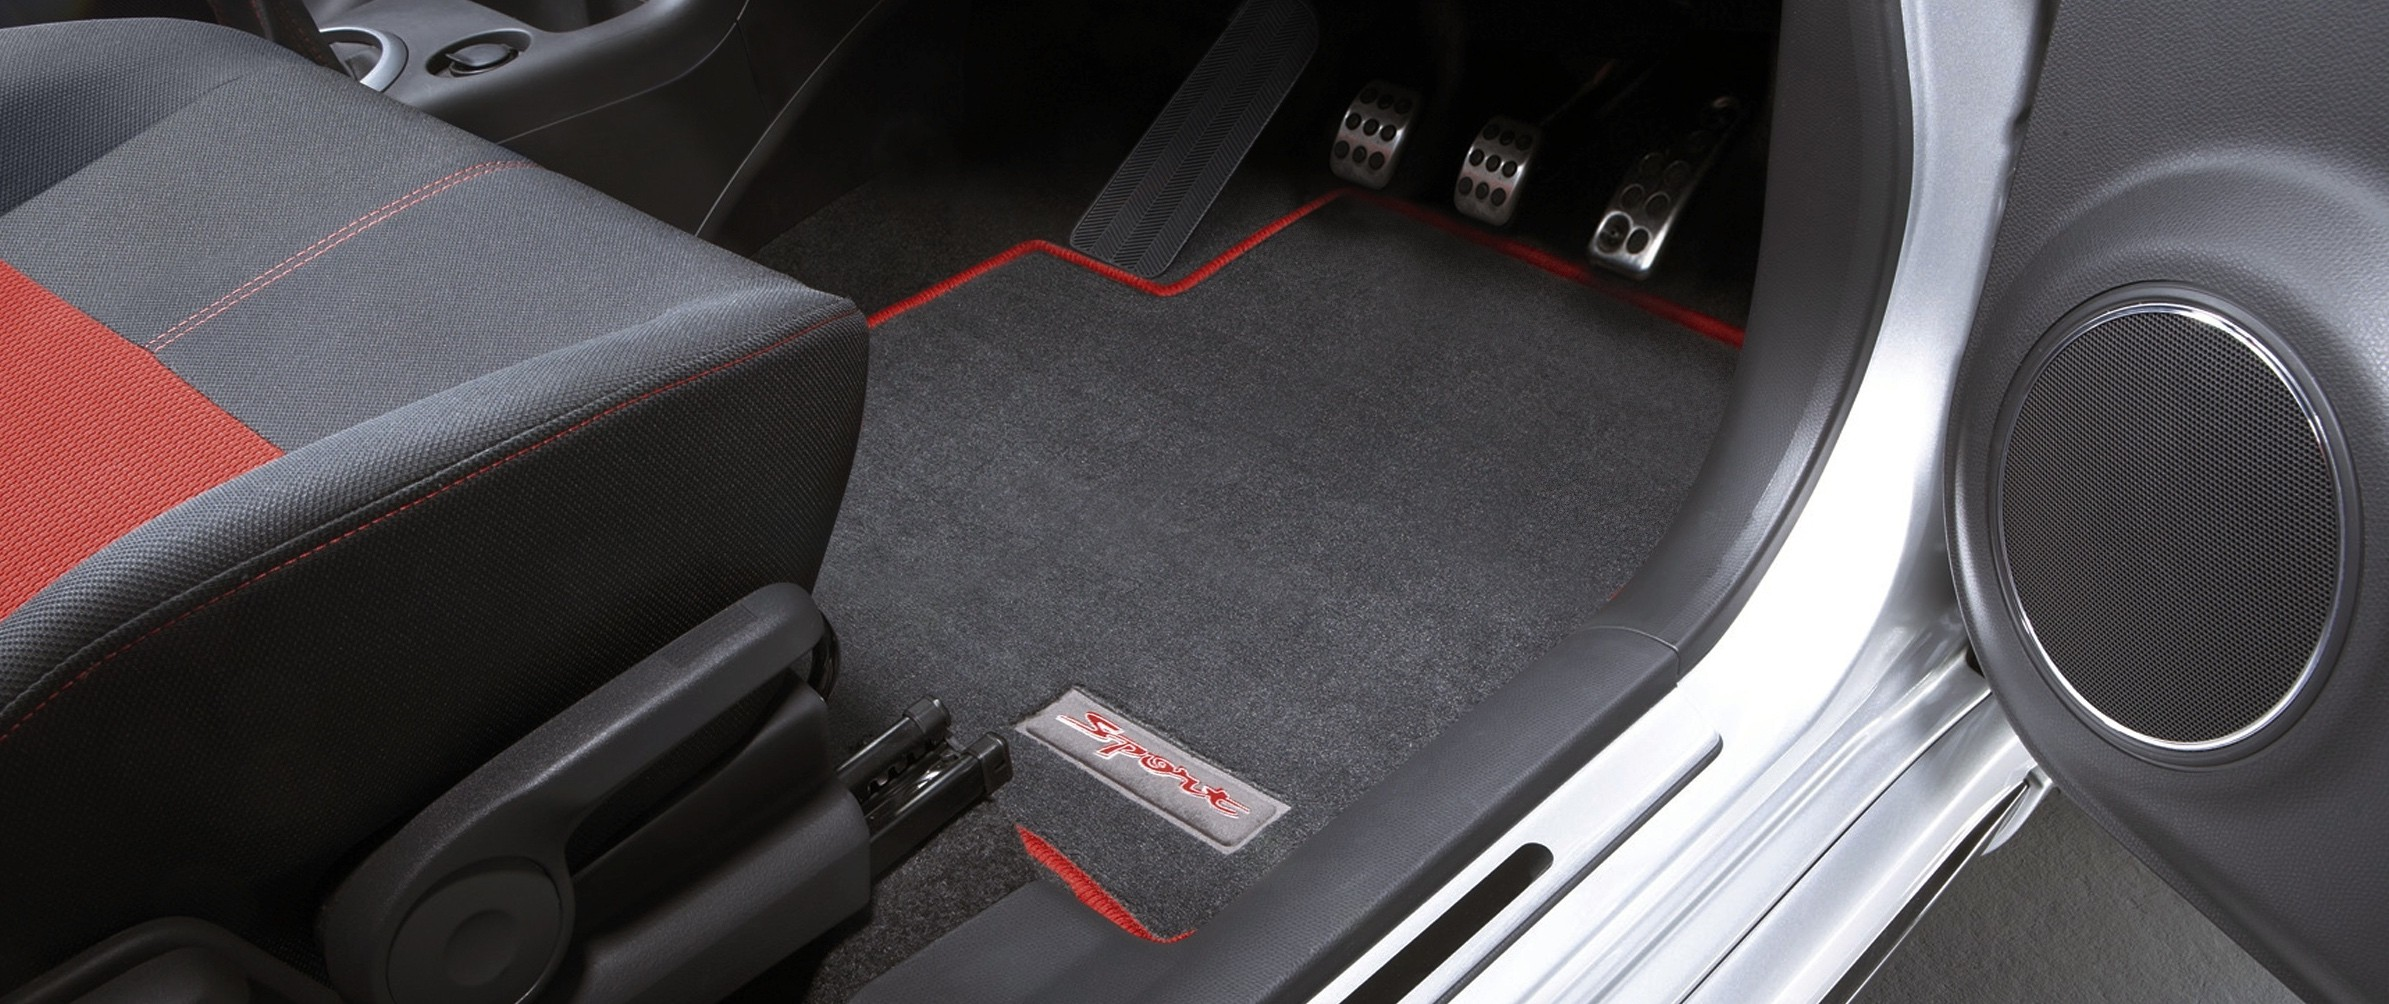 auto designer mats plush row desert floor mat super carpeted